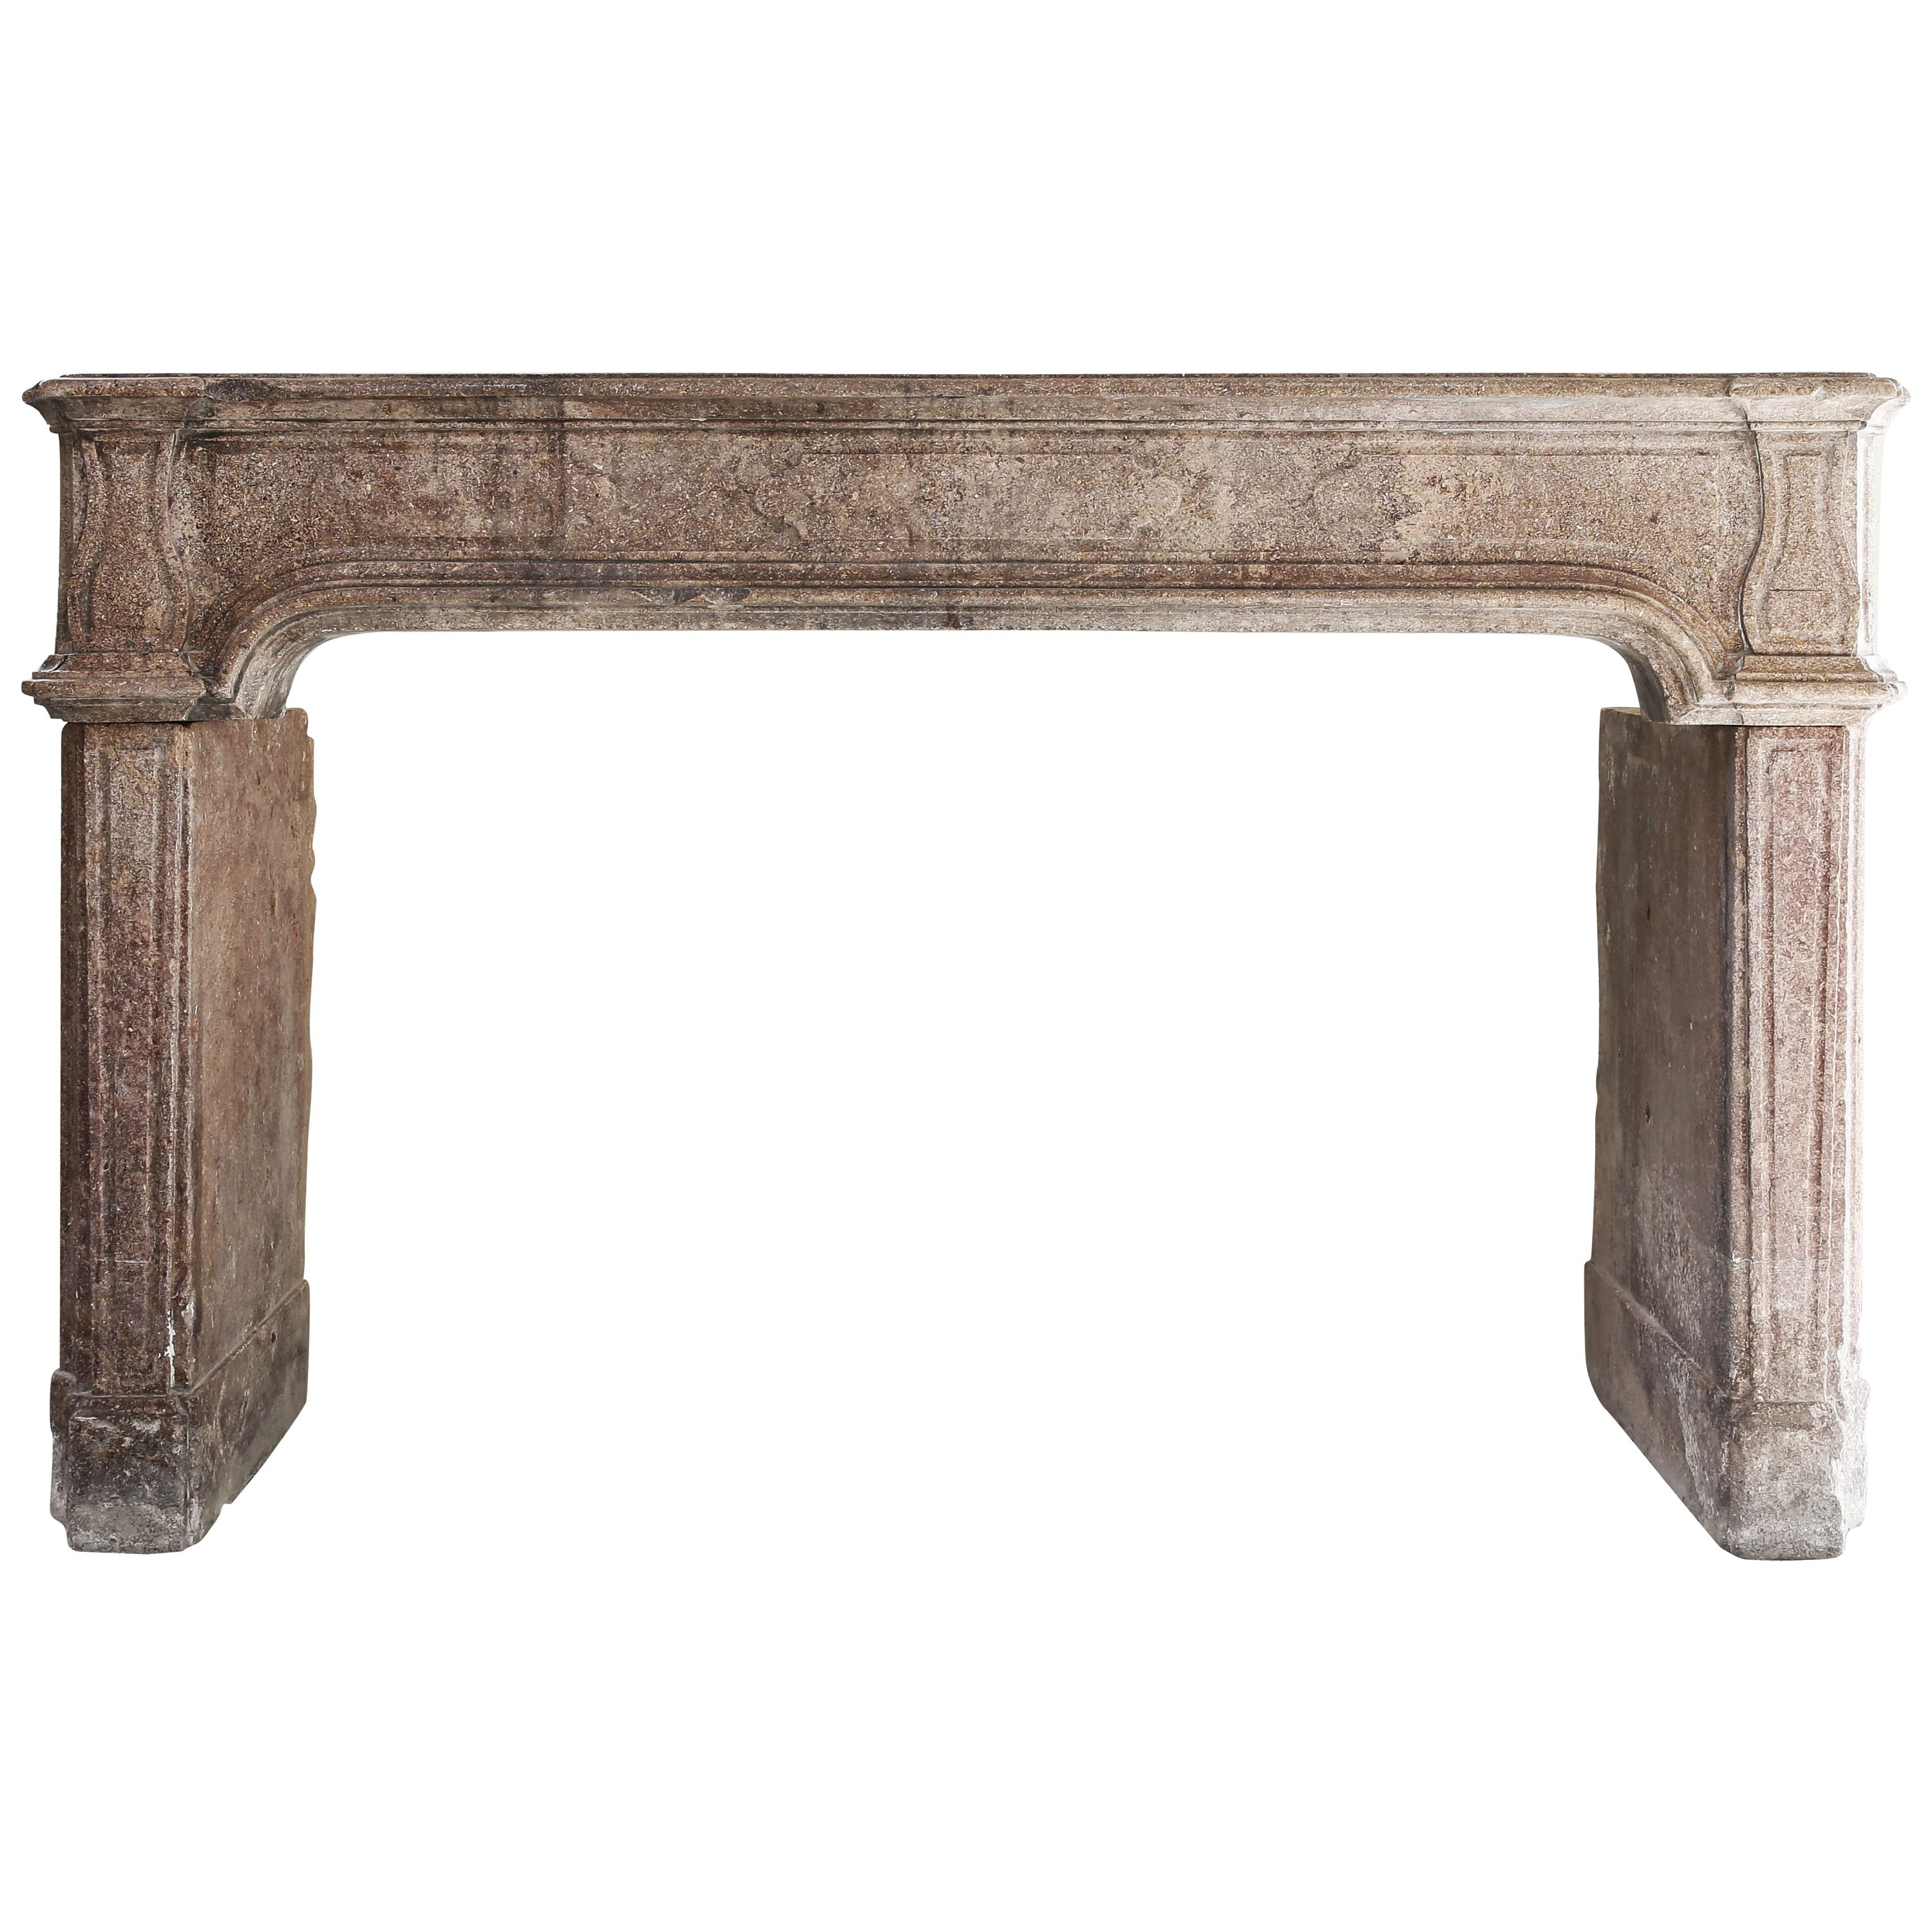 Antique French Limestone Fireplace, 19th Century, Louis XIV